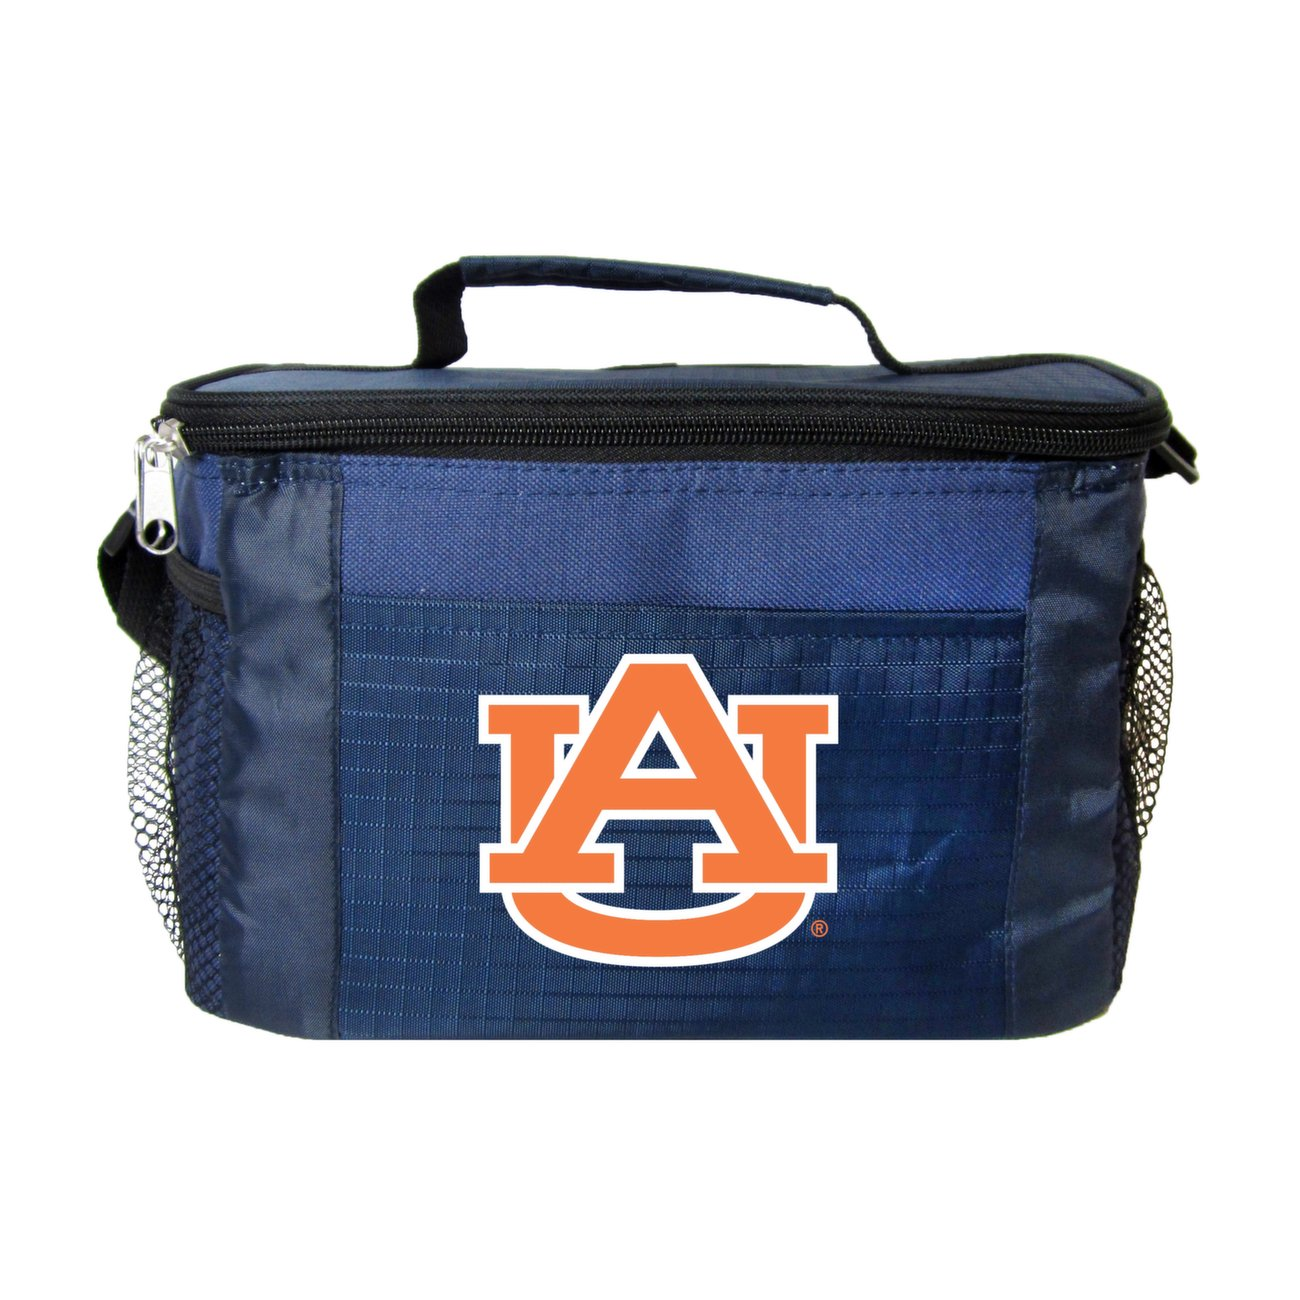 NCAA Auburn Tigers Insulated Lunch Cooler Bag with Zipper Closure, Black